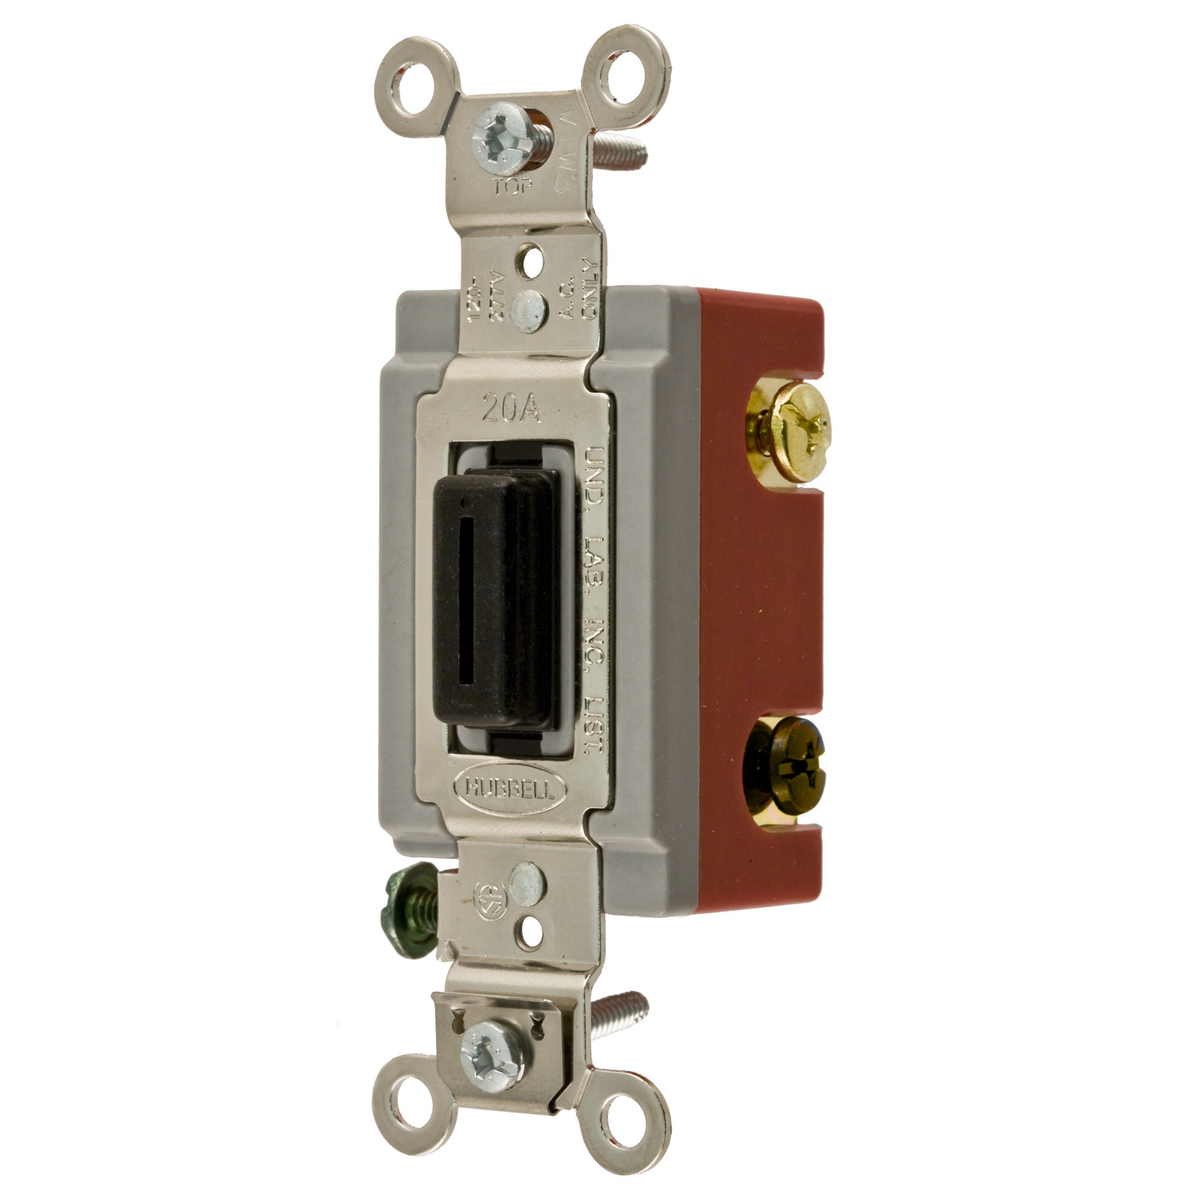 Hbl1224l Industrial Series Switches Electrical Wiring Socket Height